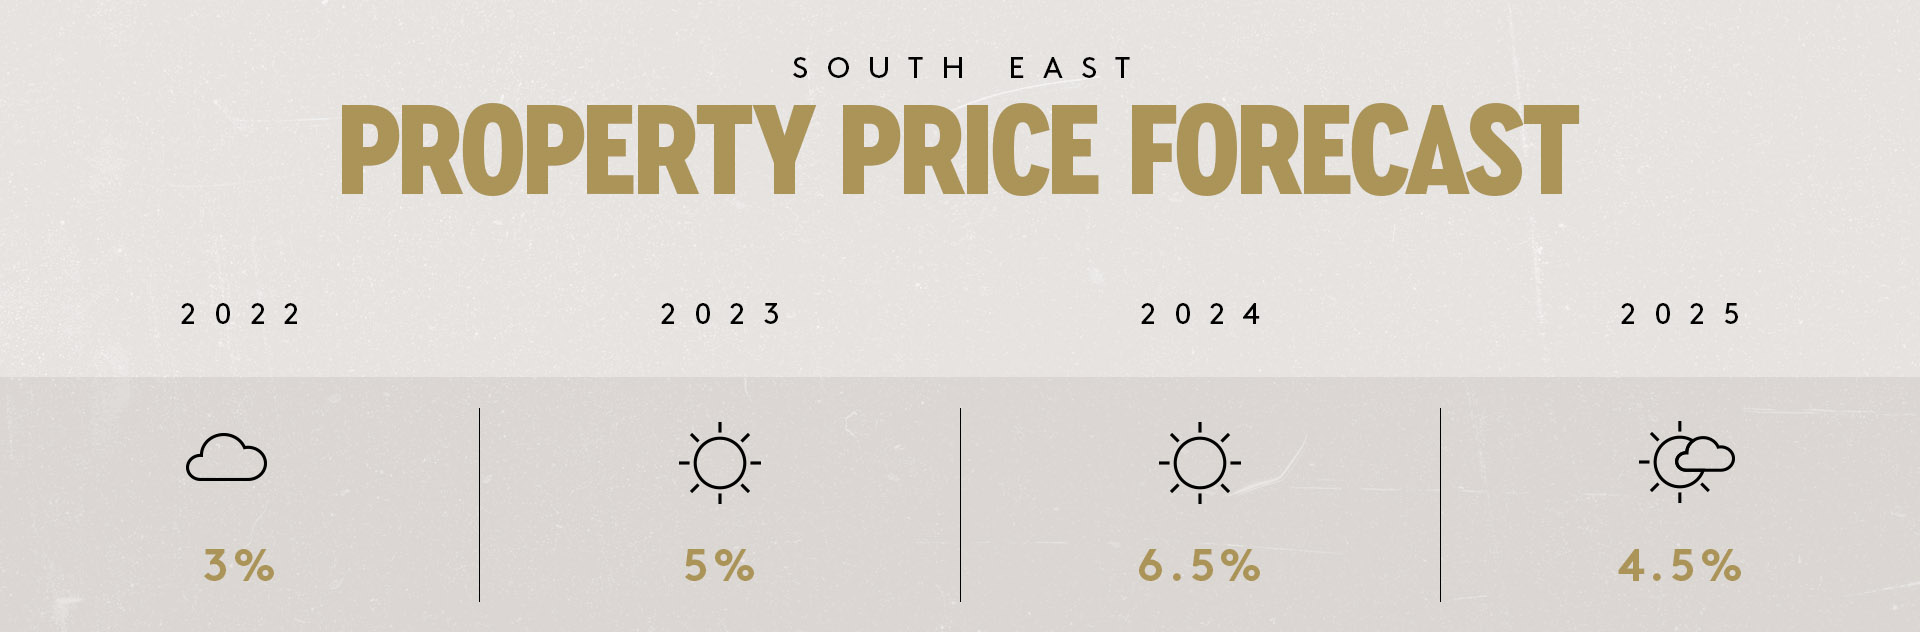 South East Property Price Forecast